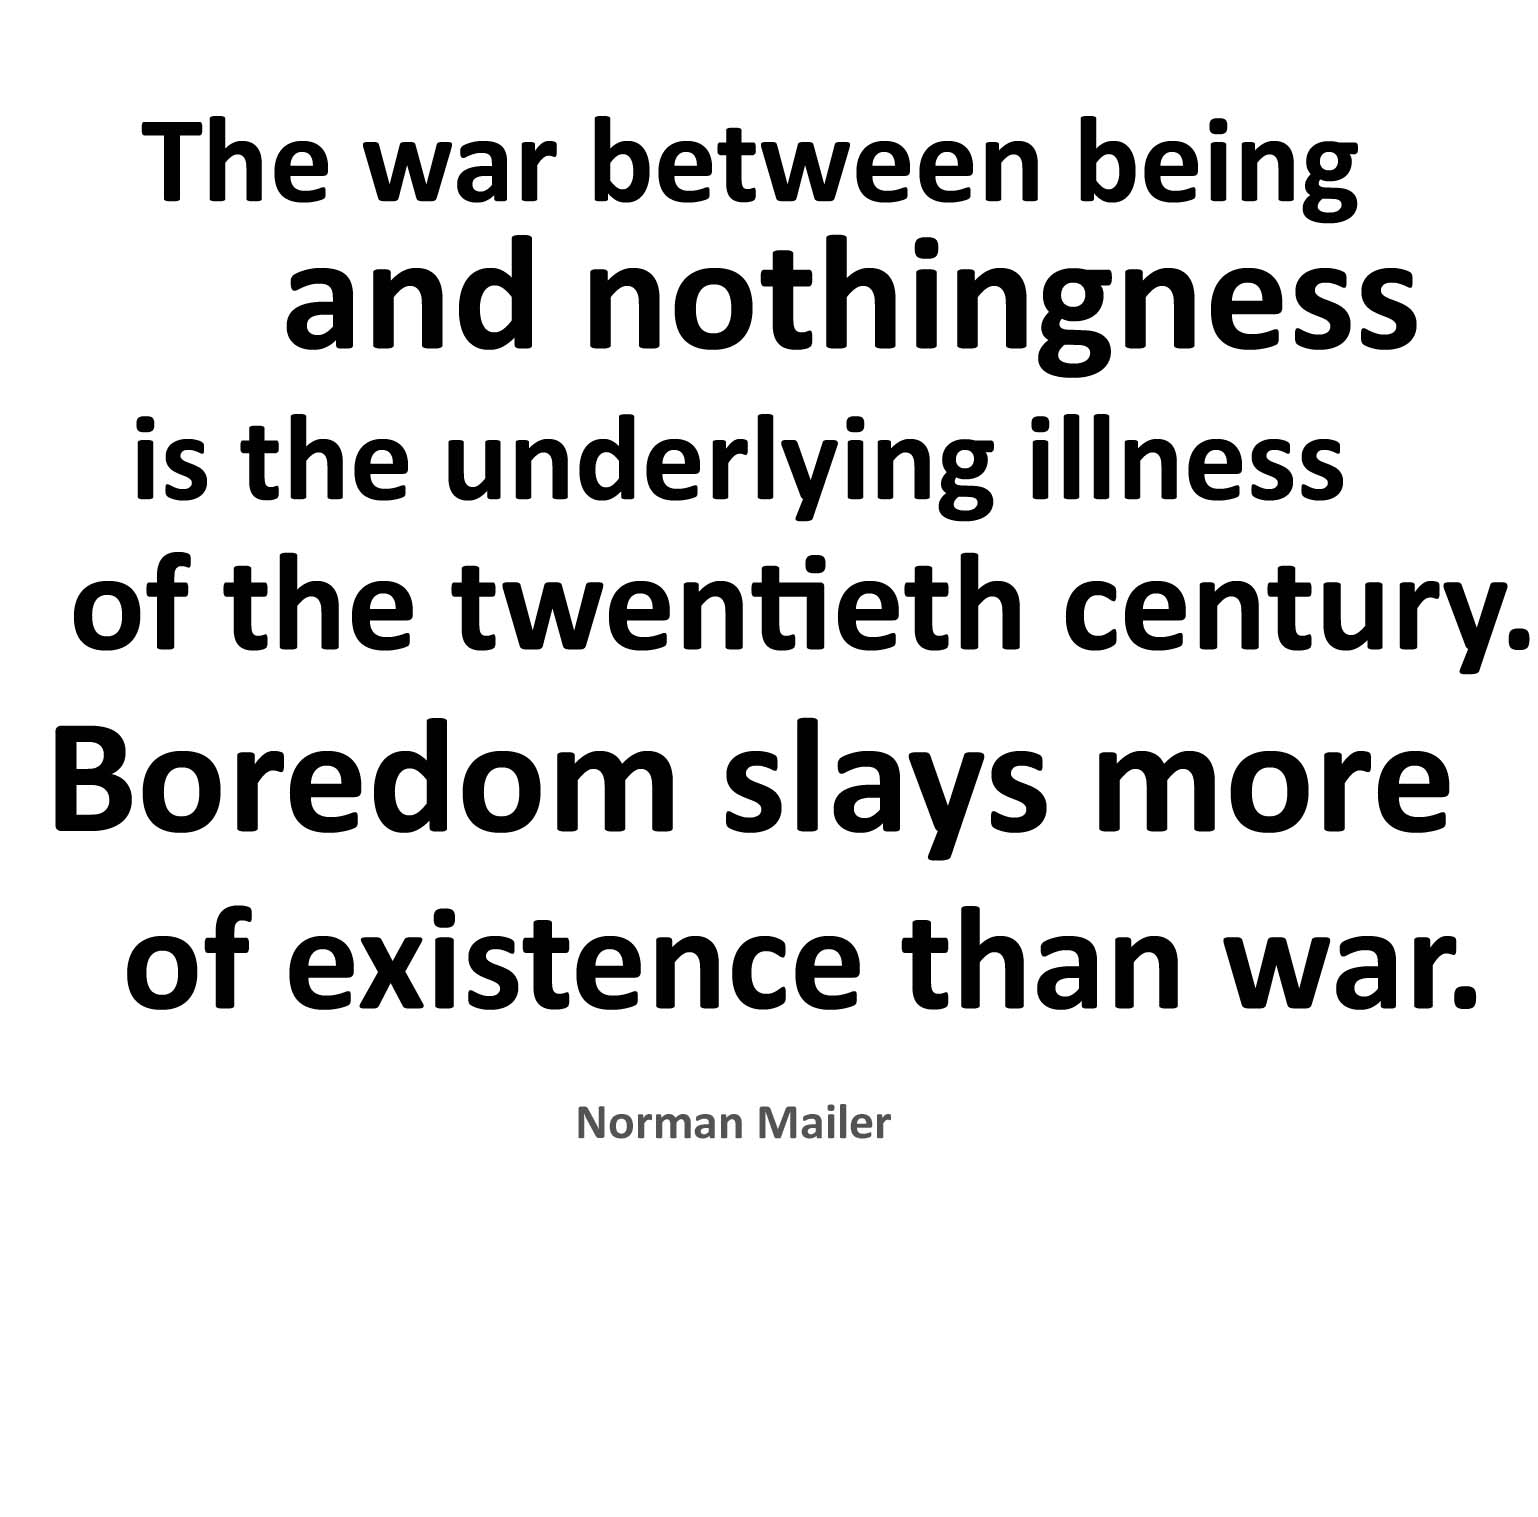 The War Between Being And Nothingness Is The Underlying Illness Of The Twentieth Century. Boredom Slays More Of Existence Than War. - Norman Mailer